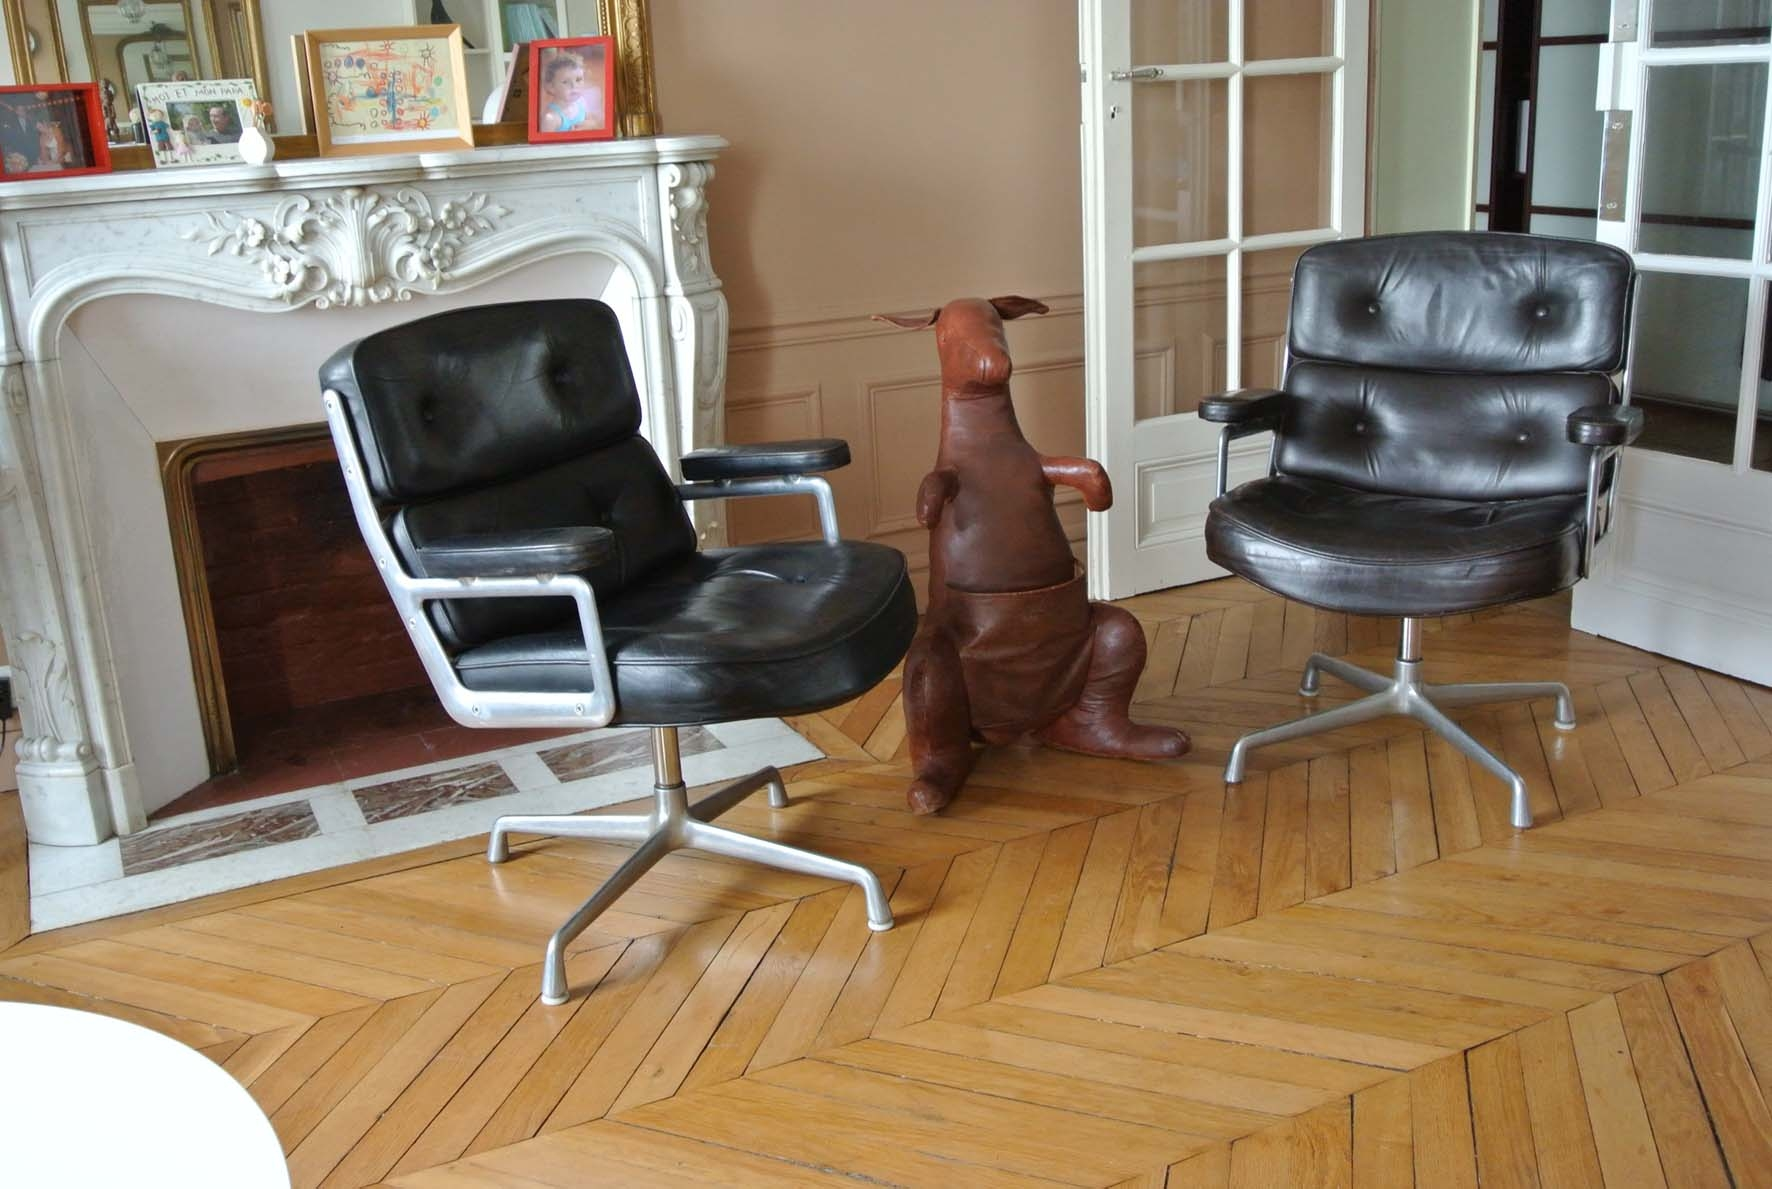 fauteuils eames lobby chair herman miller l 39 atelier 50 boutique vintage achat et vente. Black Bedroom Furniture Sets. Home Design Ideas